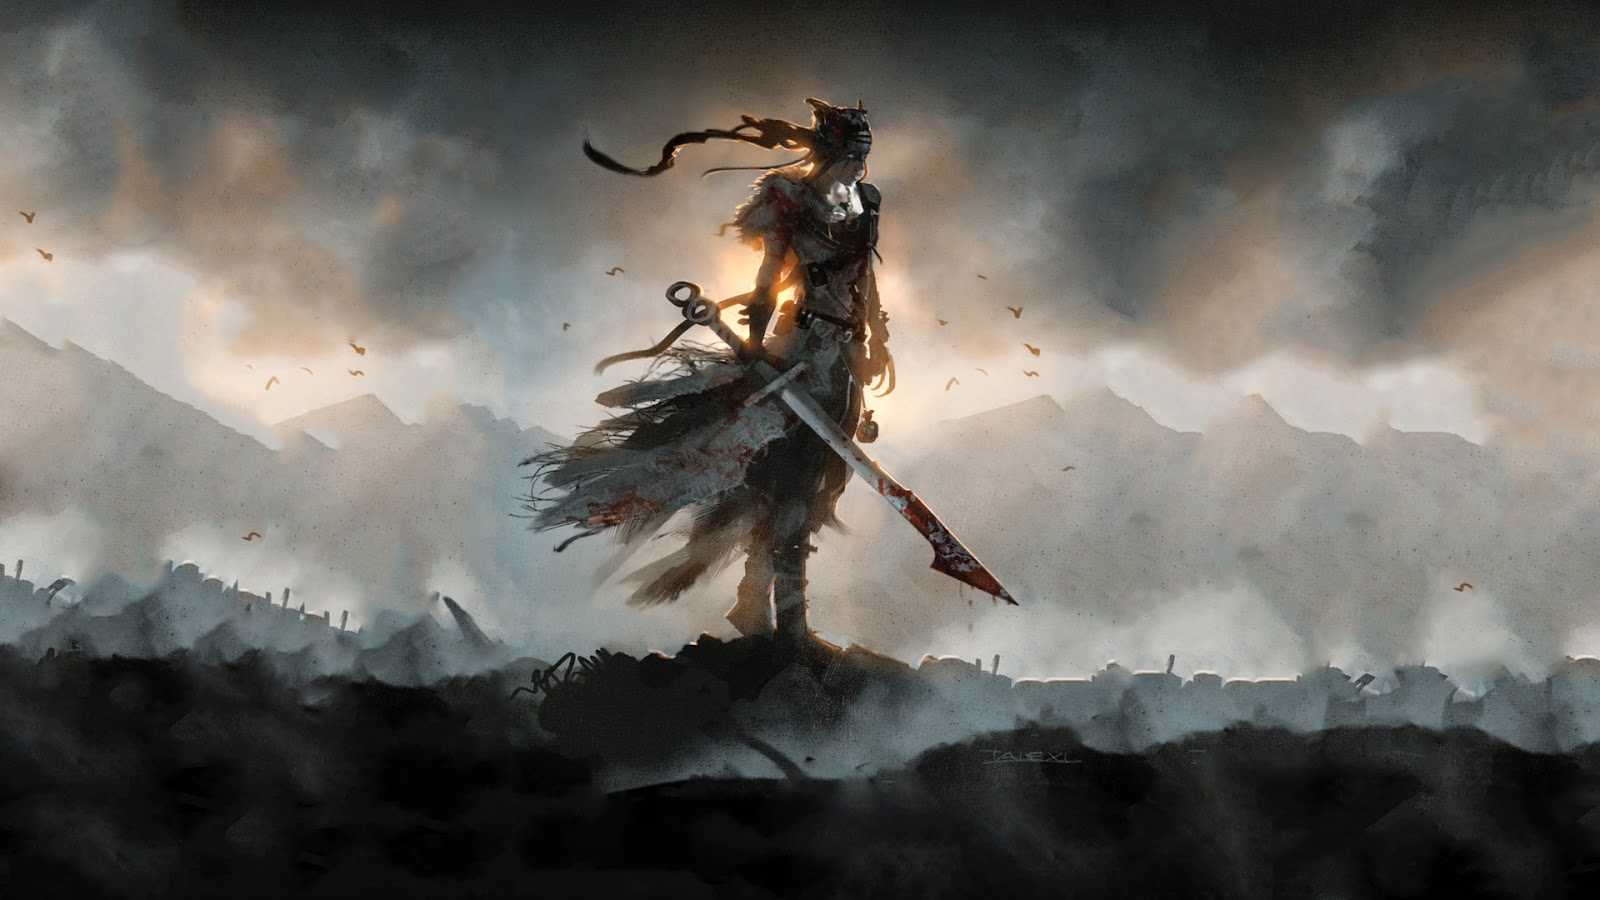 Hellblade PS4 Game Cool Desktop Wallpapers - Cool Desktop Wallpapers